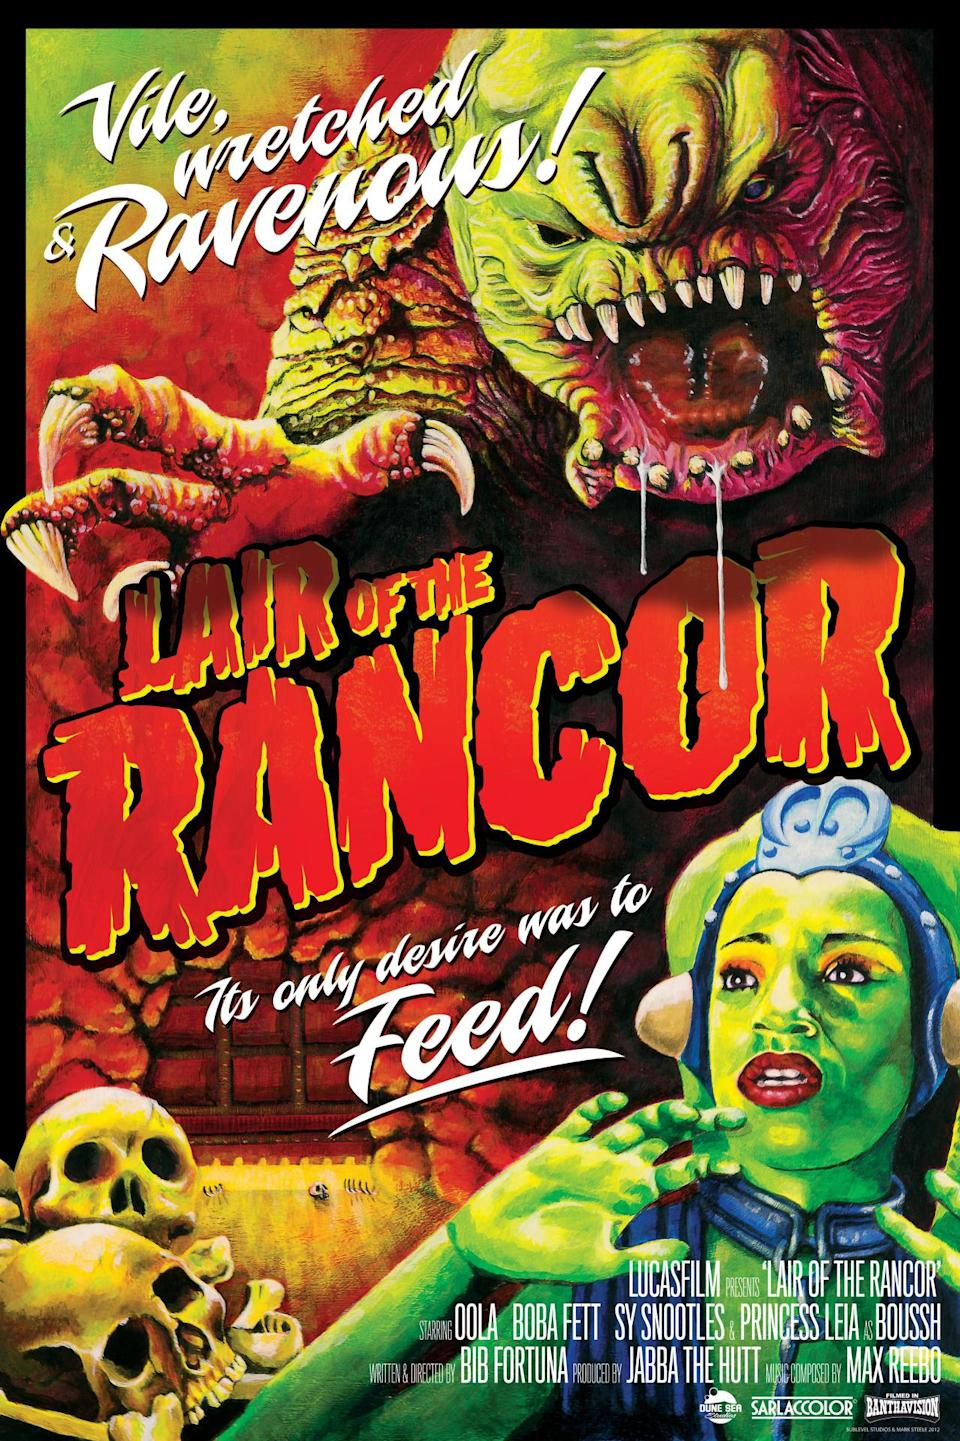 """<p>Jabba's bloodthirsty pet is reconceived as a B-movie monster in a 2012 poster by Mark Daniels and Mark Steele. The fictional """"Lair of the Rancor"""" features an all-time cast of Oola, Boba Fett, Sy Snootles, and Princess Leia as Boussh!</p>"""